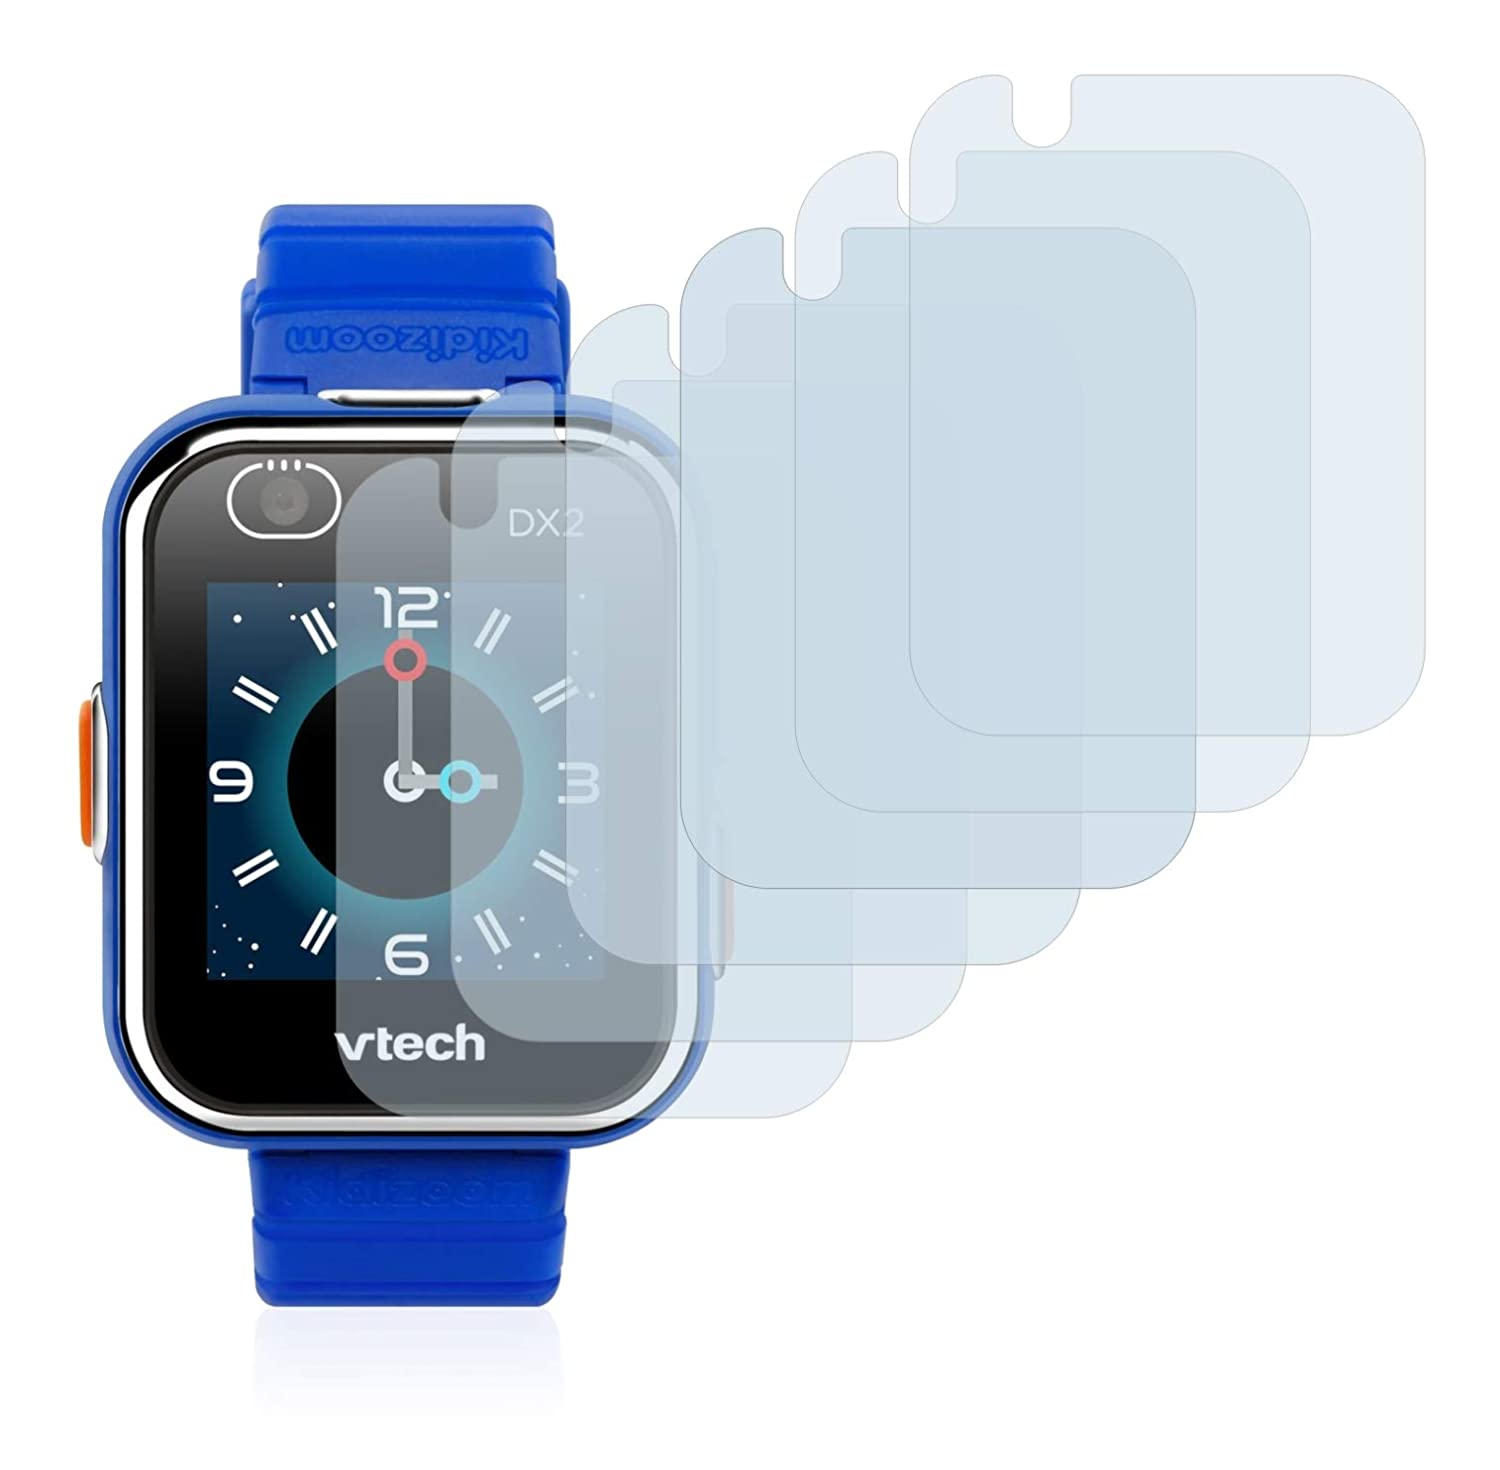 savvies Protector Pantalla Compatible con Vtech Kidizoom Smart Watch DX2 (6 Unidades) Pelicula Ultra Transparente